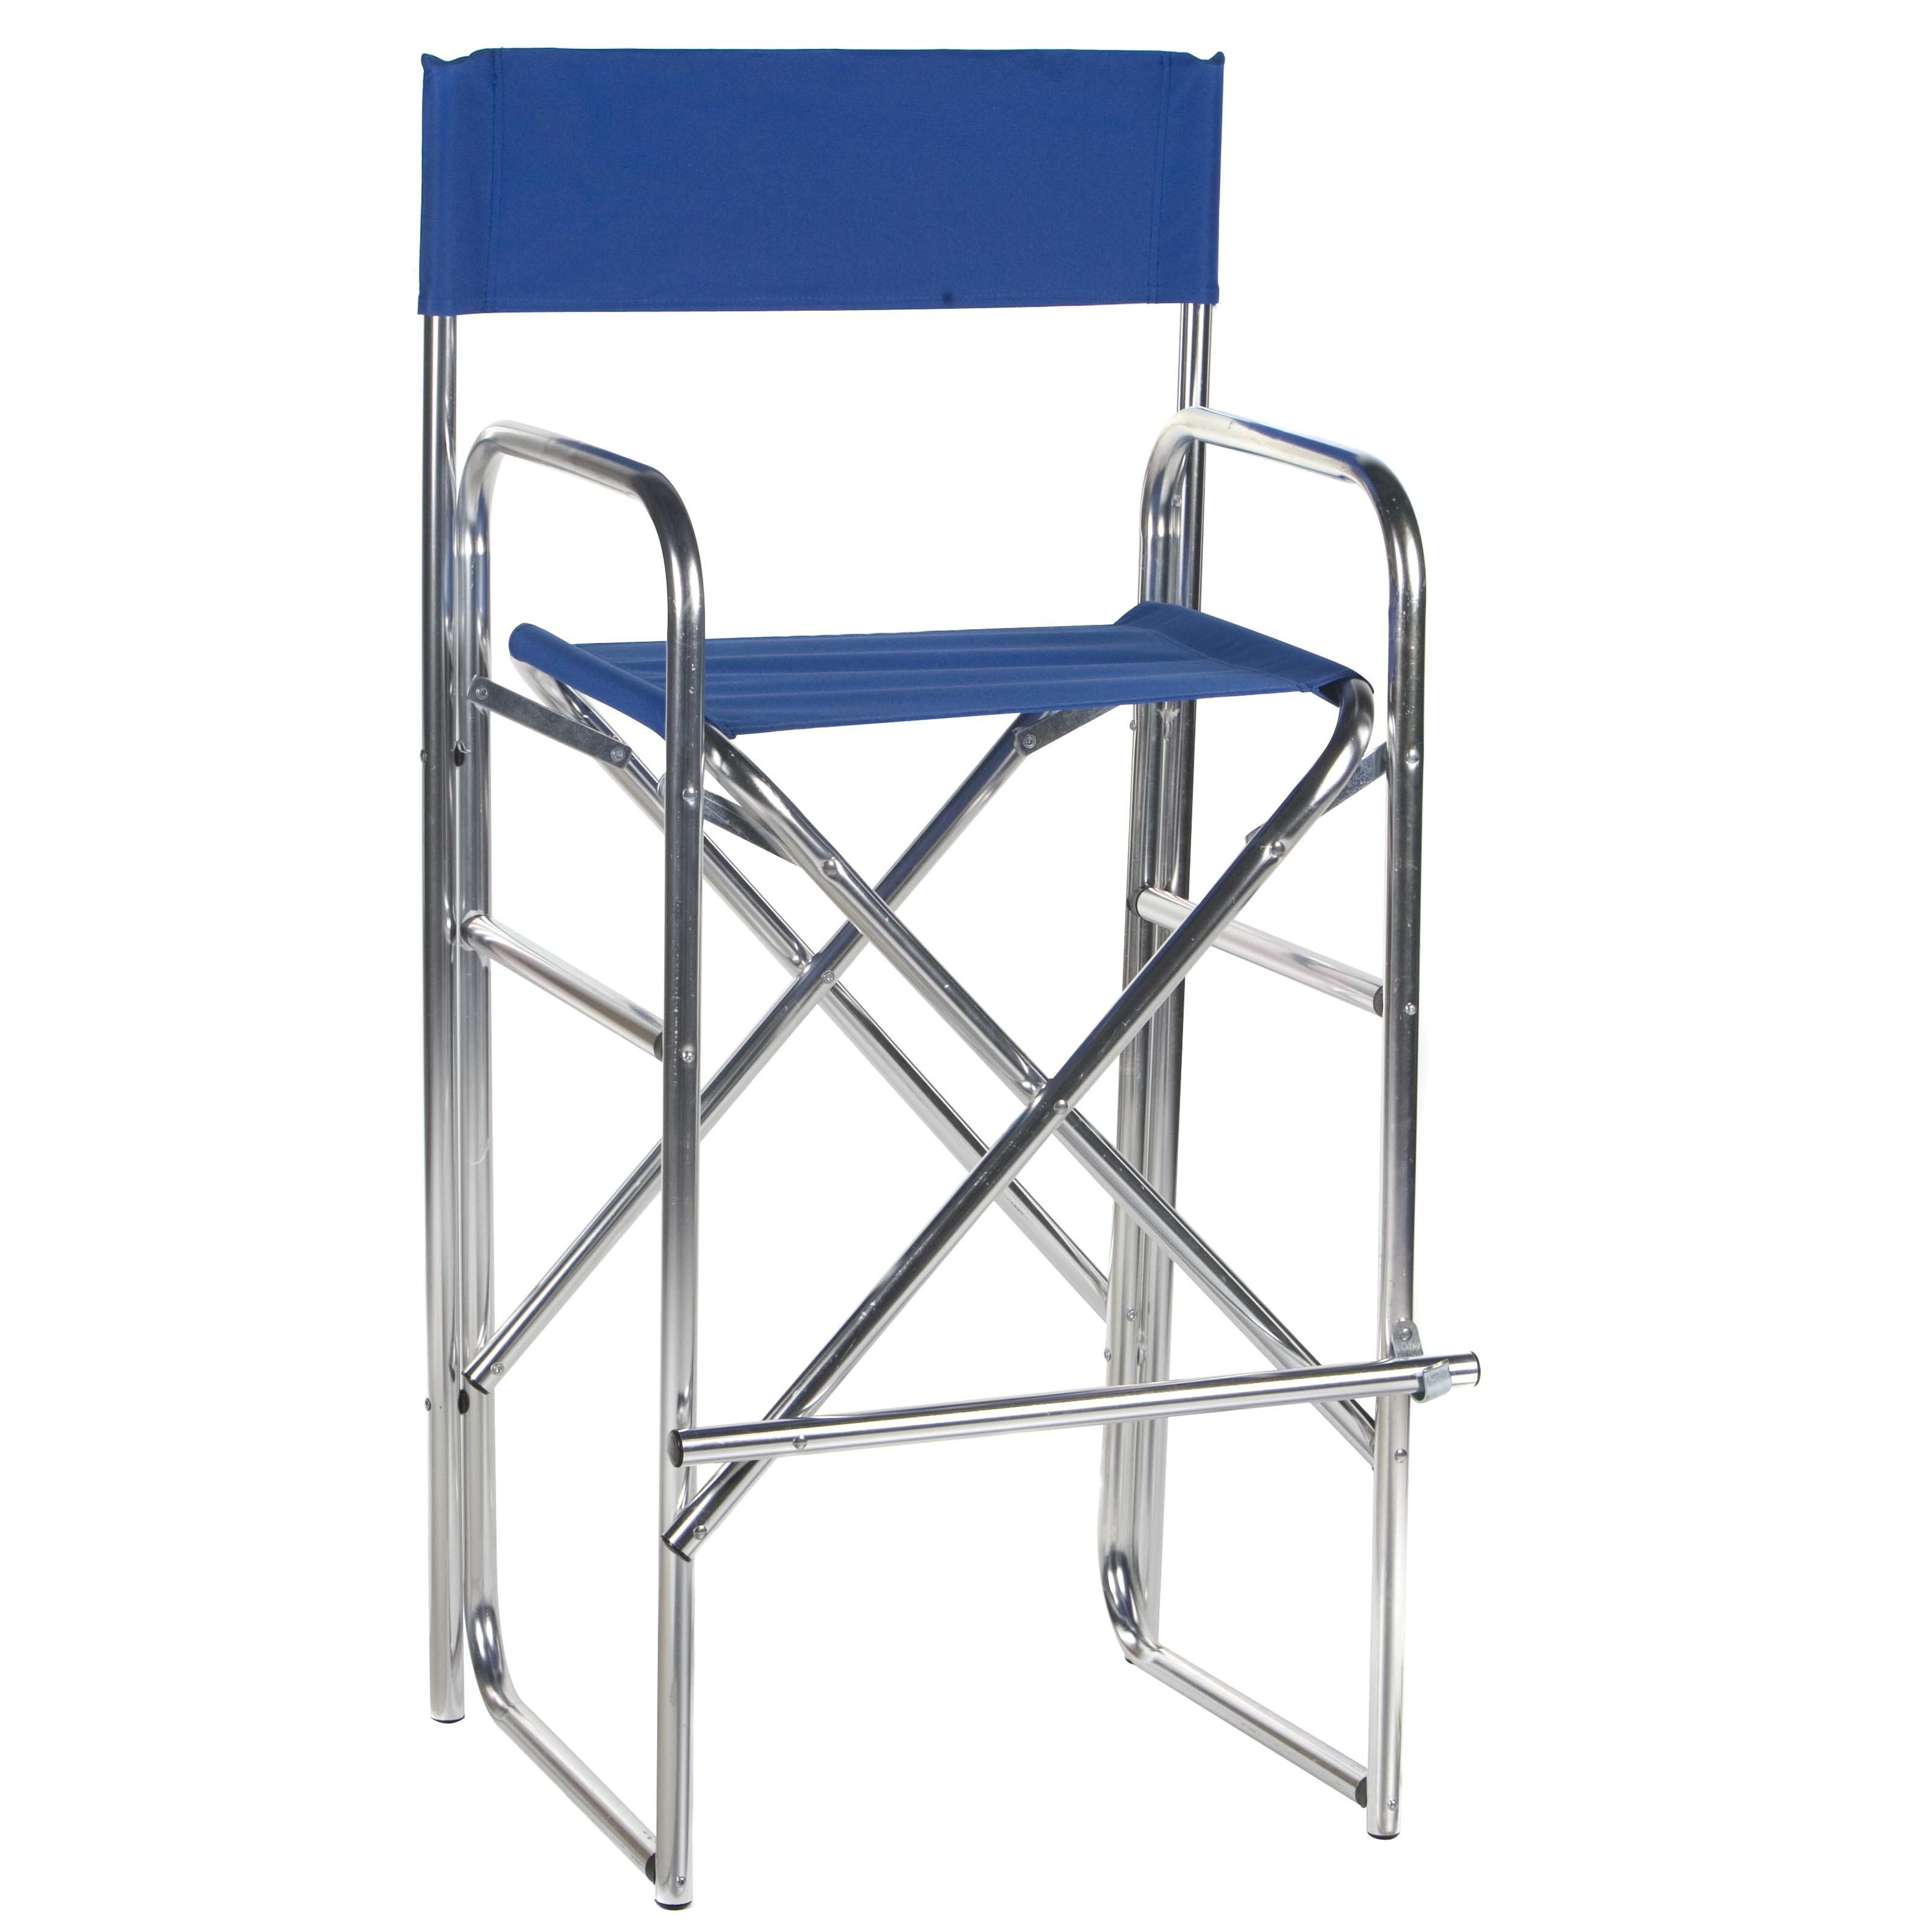 Stupendous Have To Have It 30 5 Inch Aluminum Frame Bar Height Lamtechconsult Wood Chair Design Ideas Lamtechconsultcom